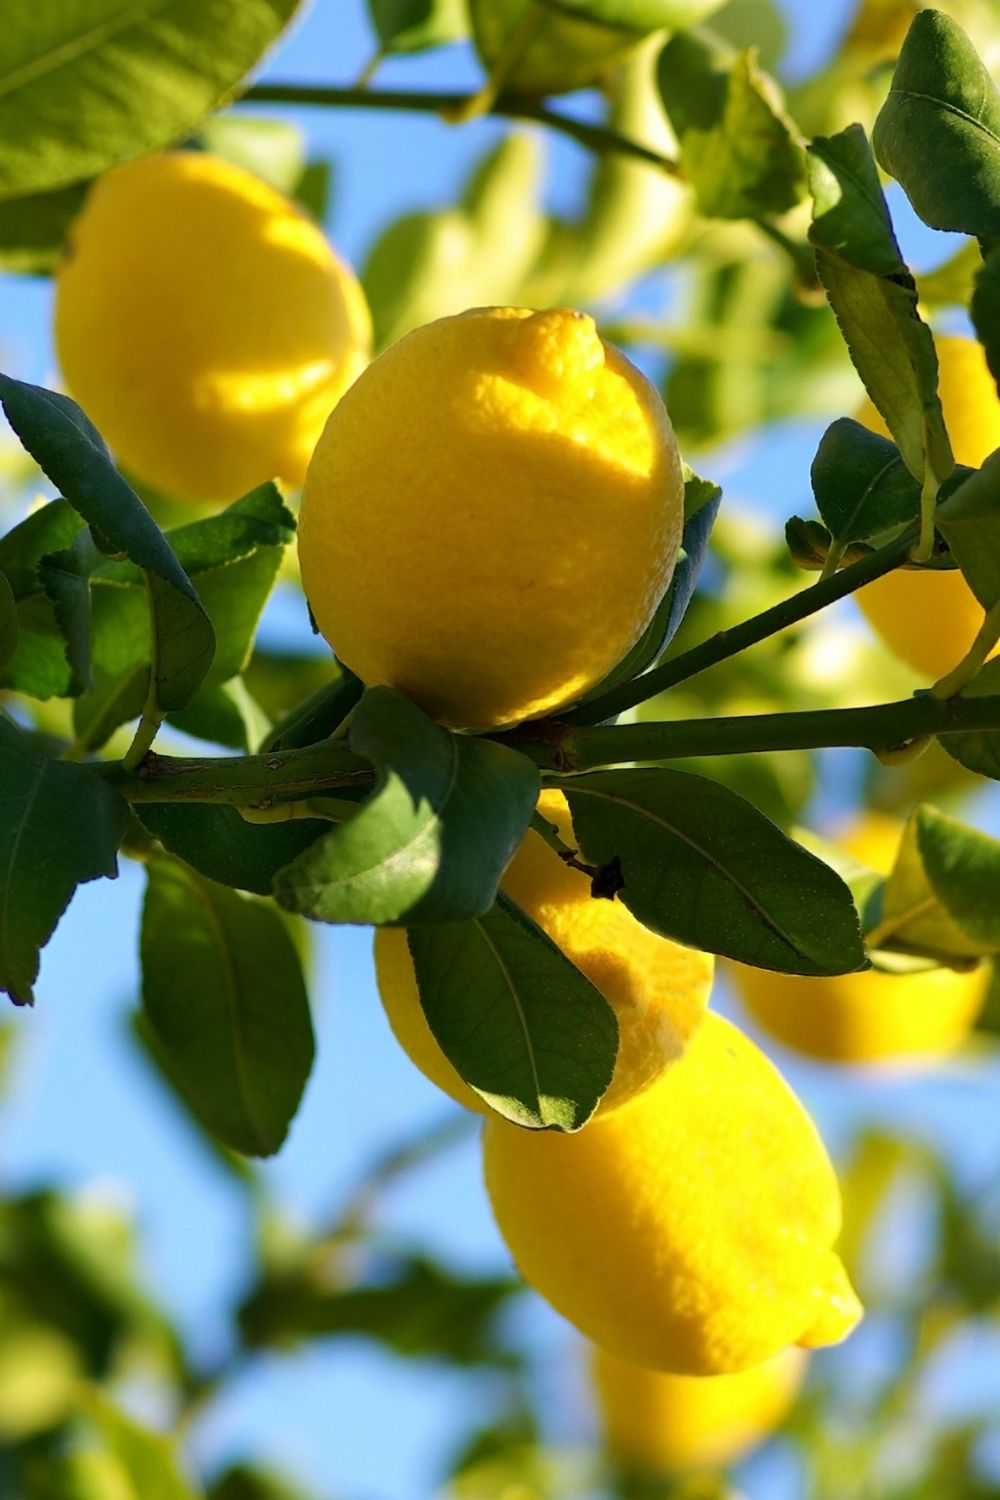 several ripe lemons hang from the branches of a lemon tree